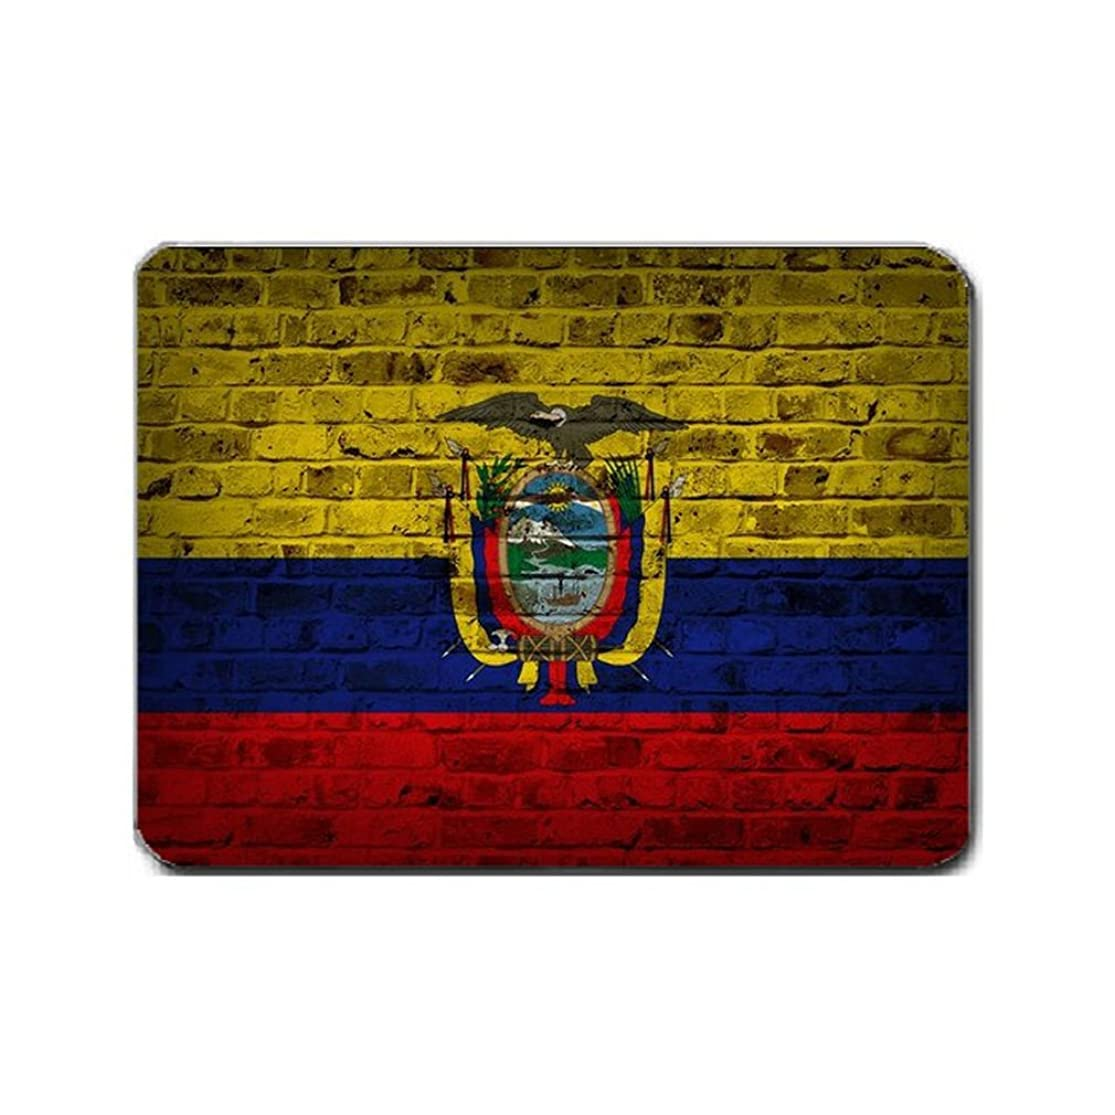 Ecuador Flag Brick Wall Design Mouse Pad xaugigbm0